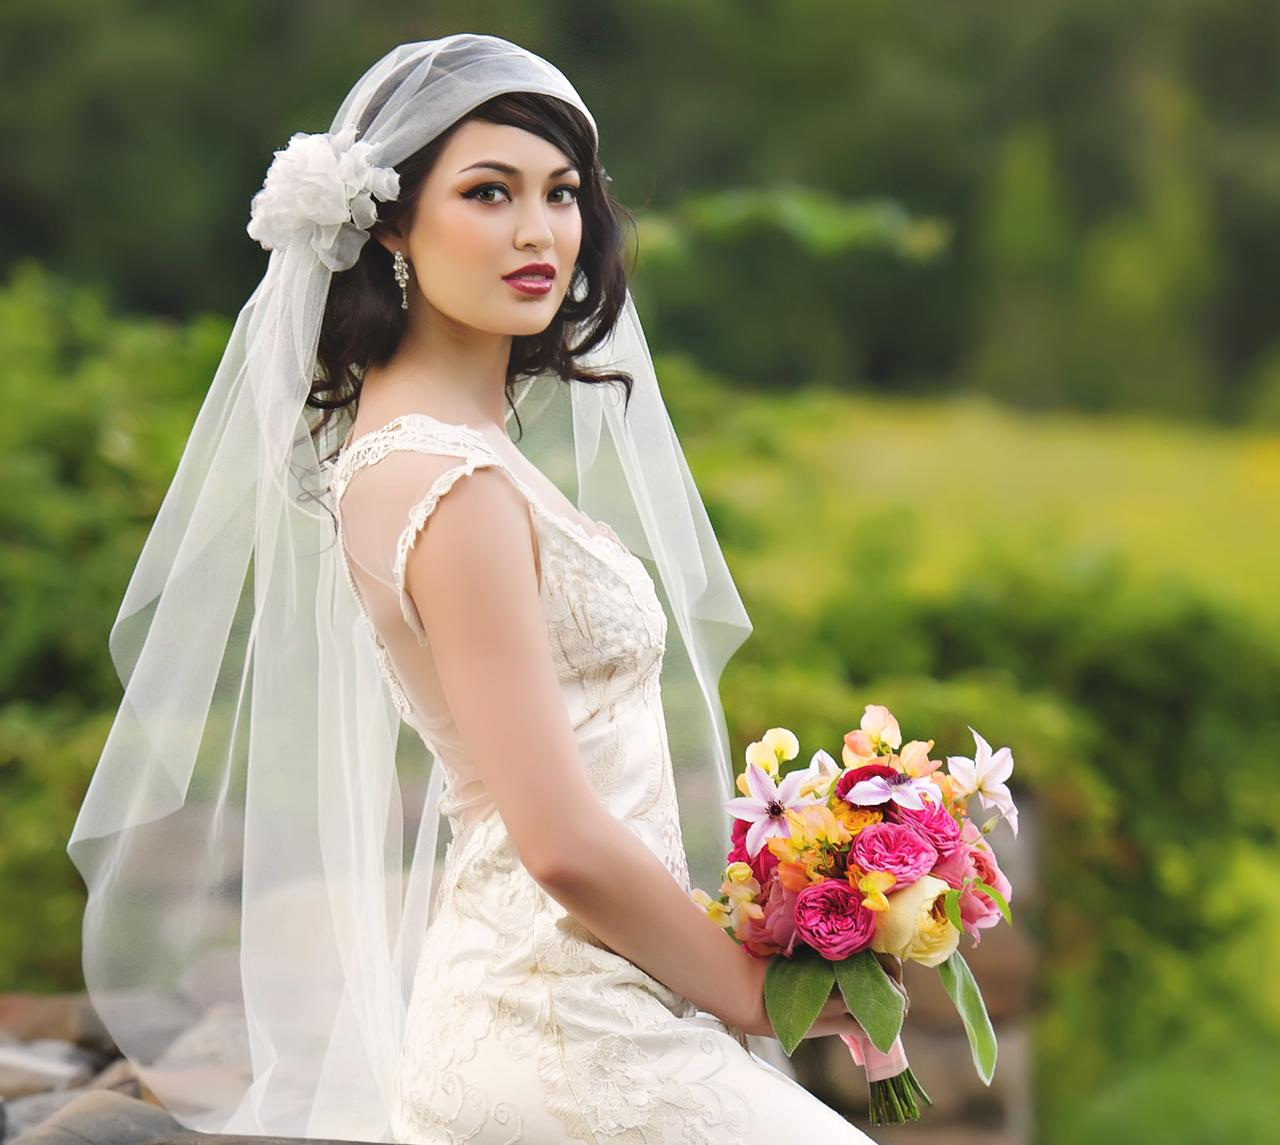 Bride photo AFTER retouching